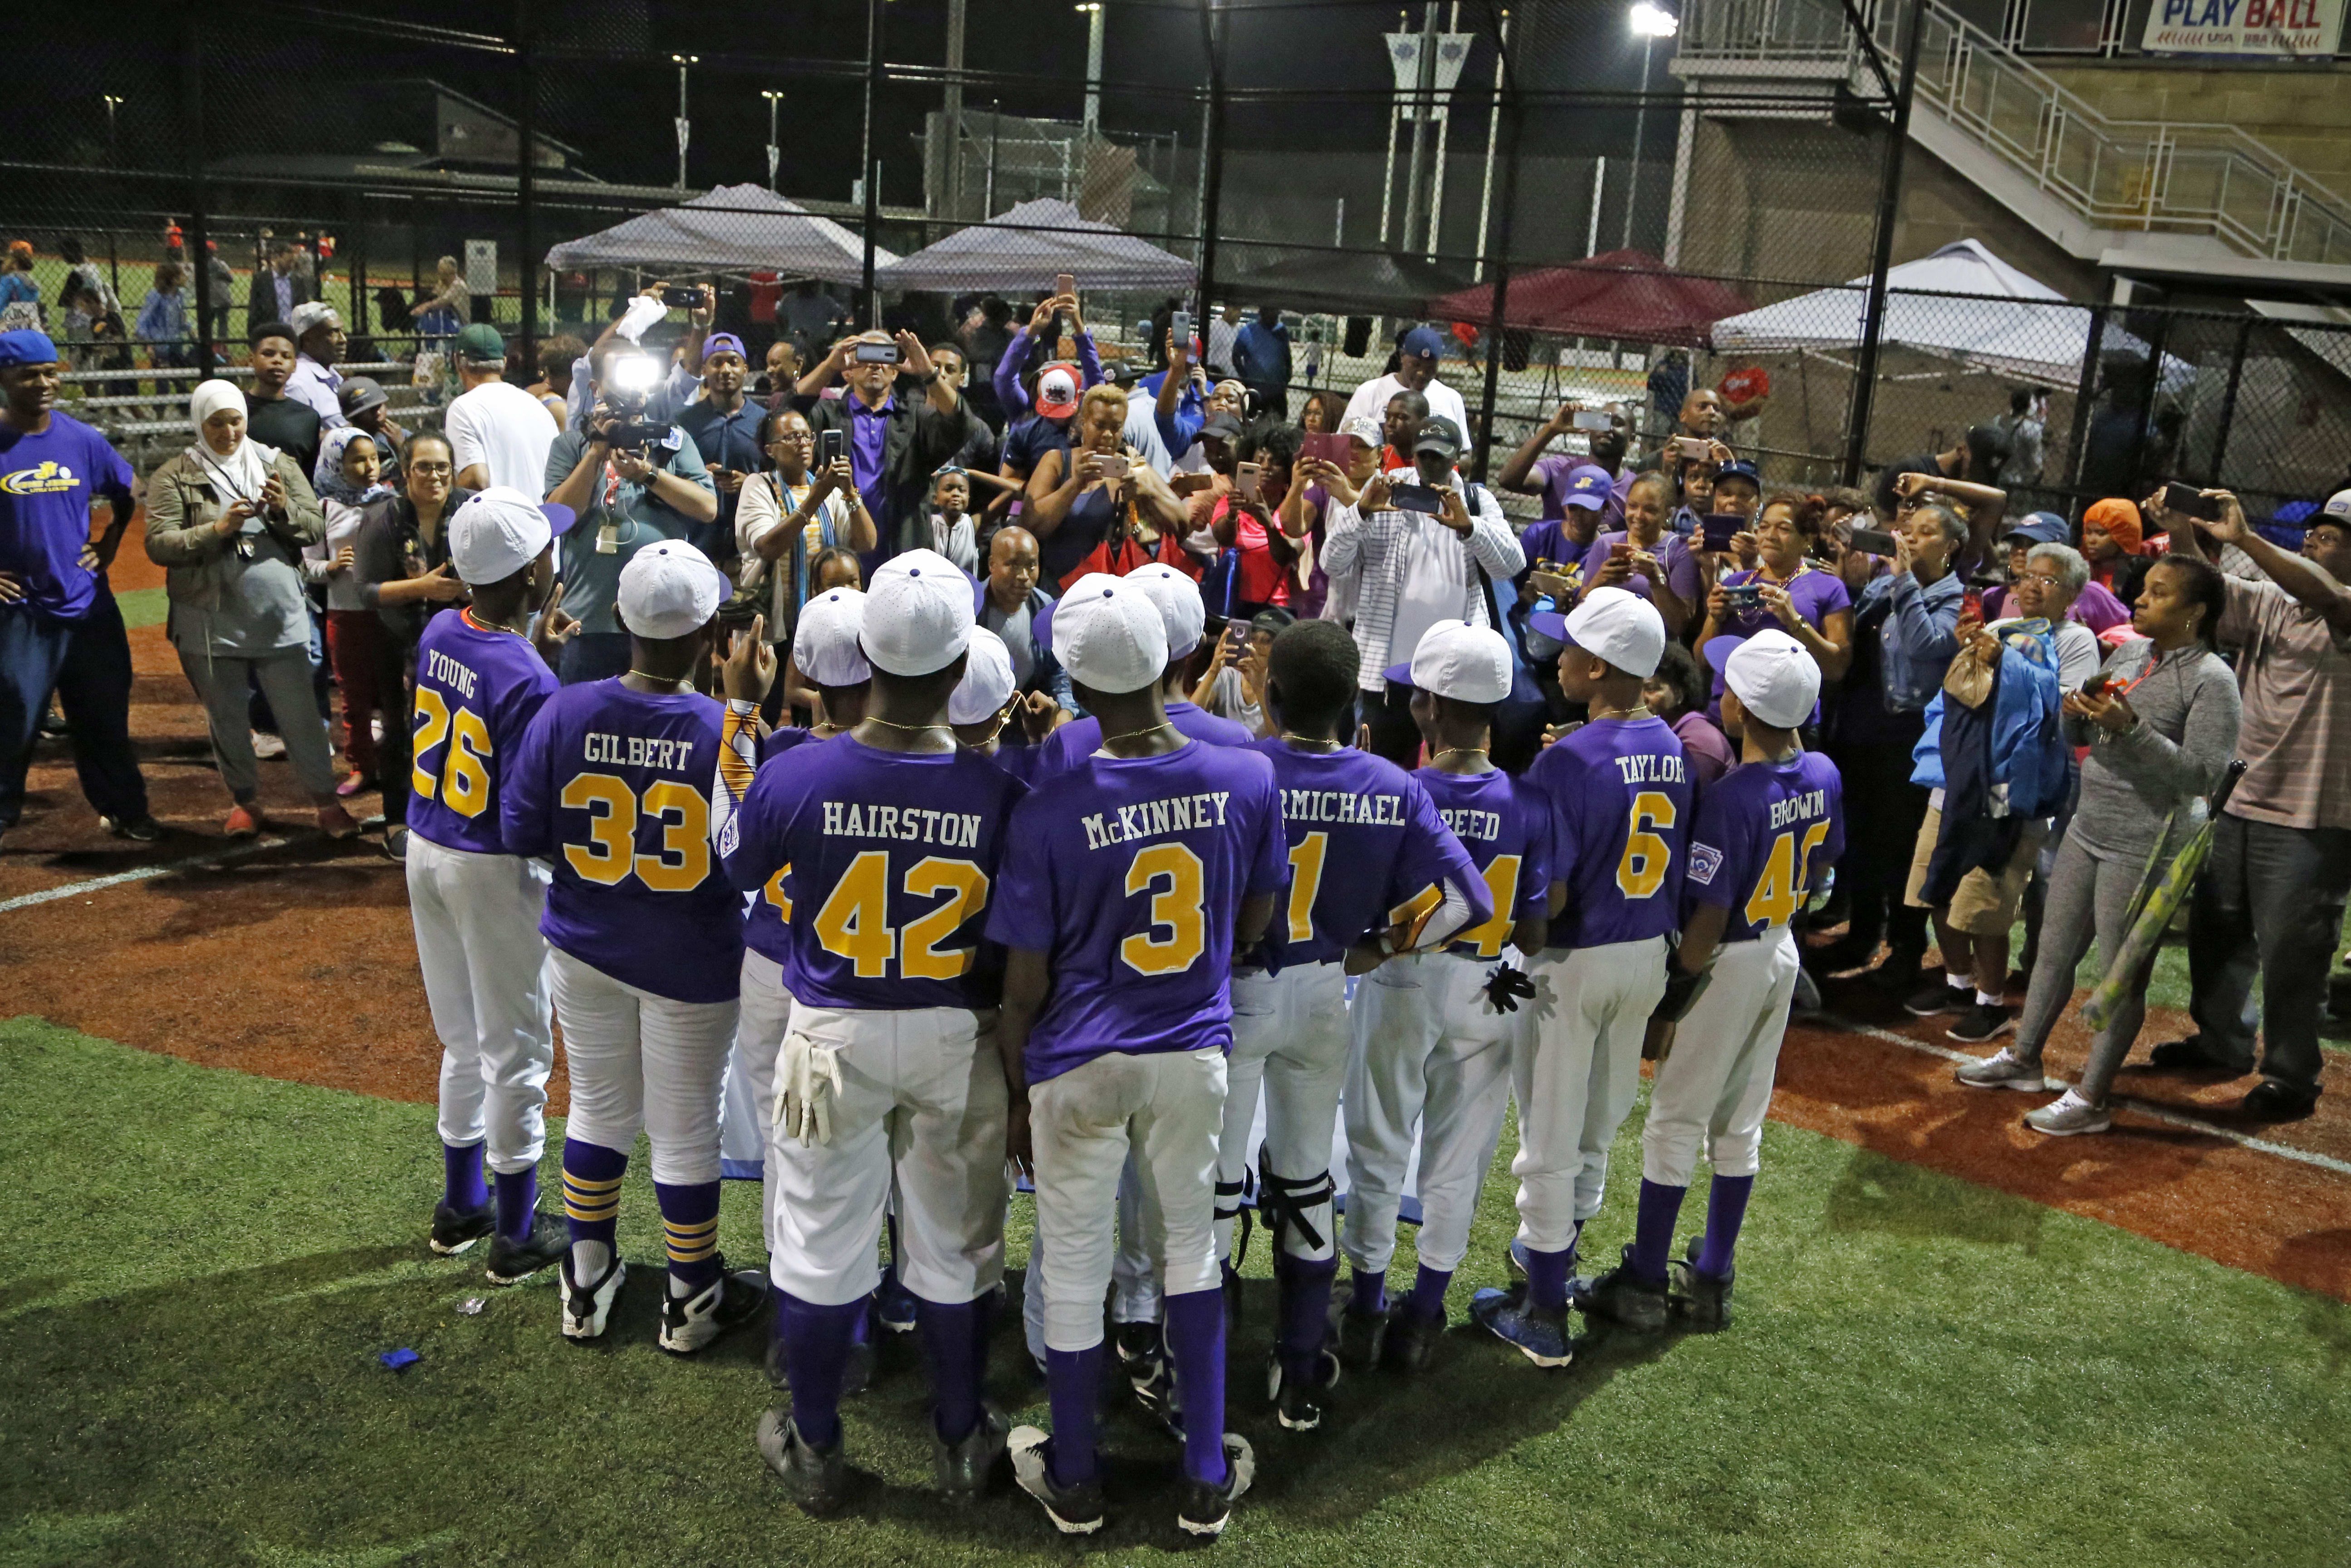 Mamie Johnson Little League celebrates with family after winning